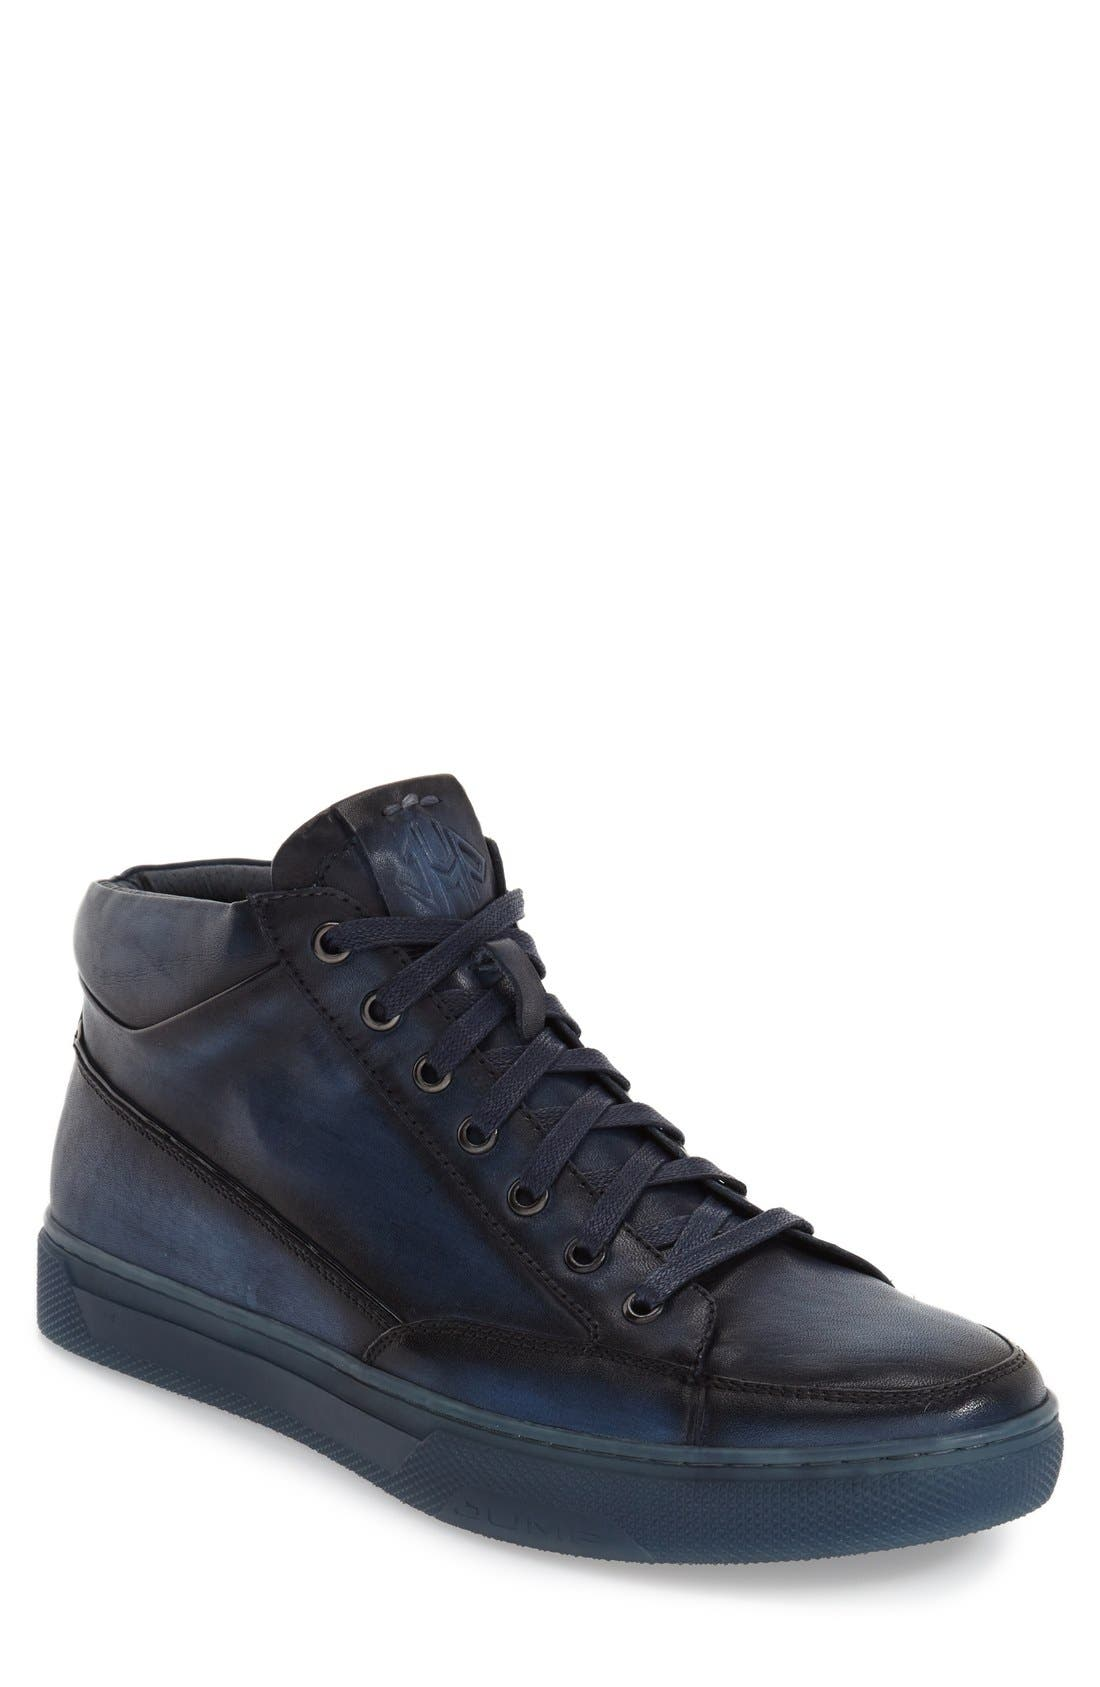 'Strickland' Sneaker,                         Main,                         color, NAVY LEATHER